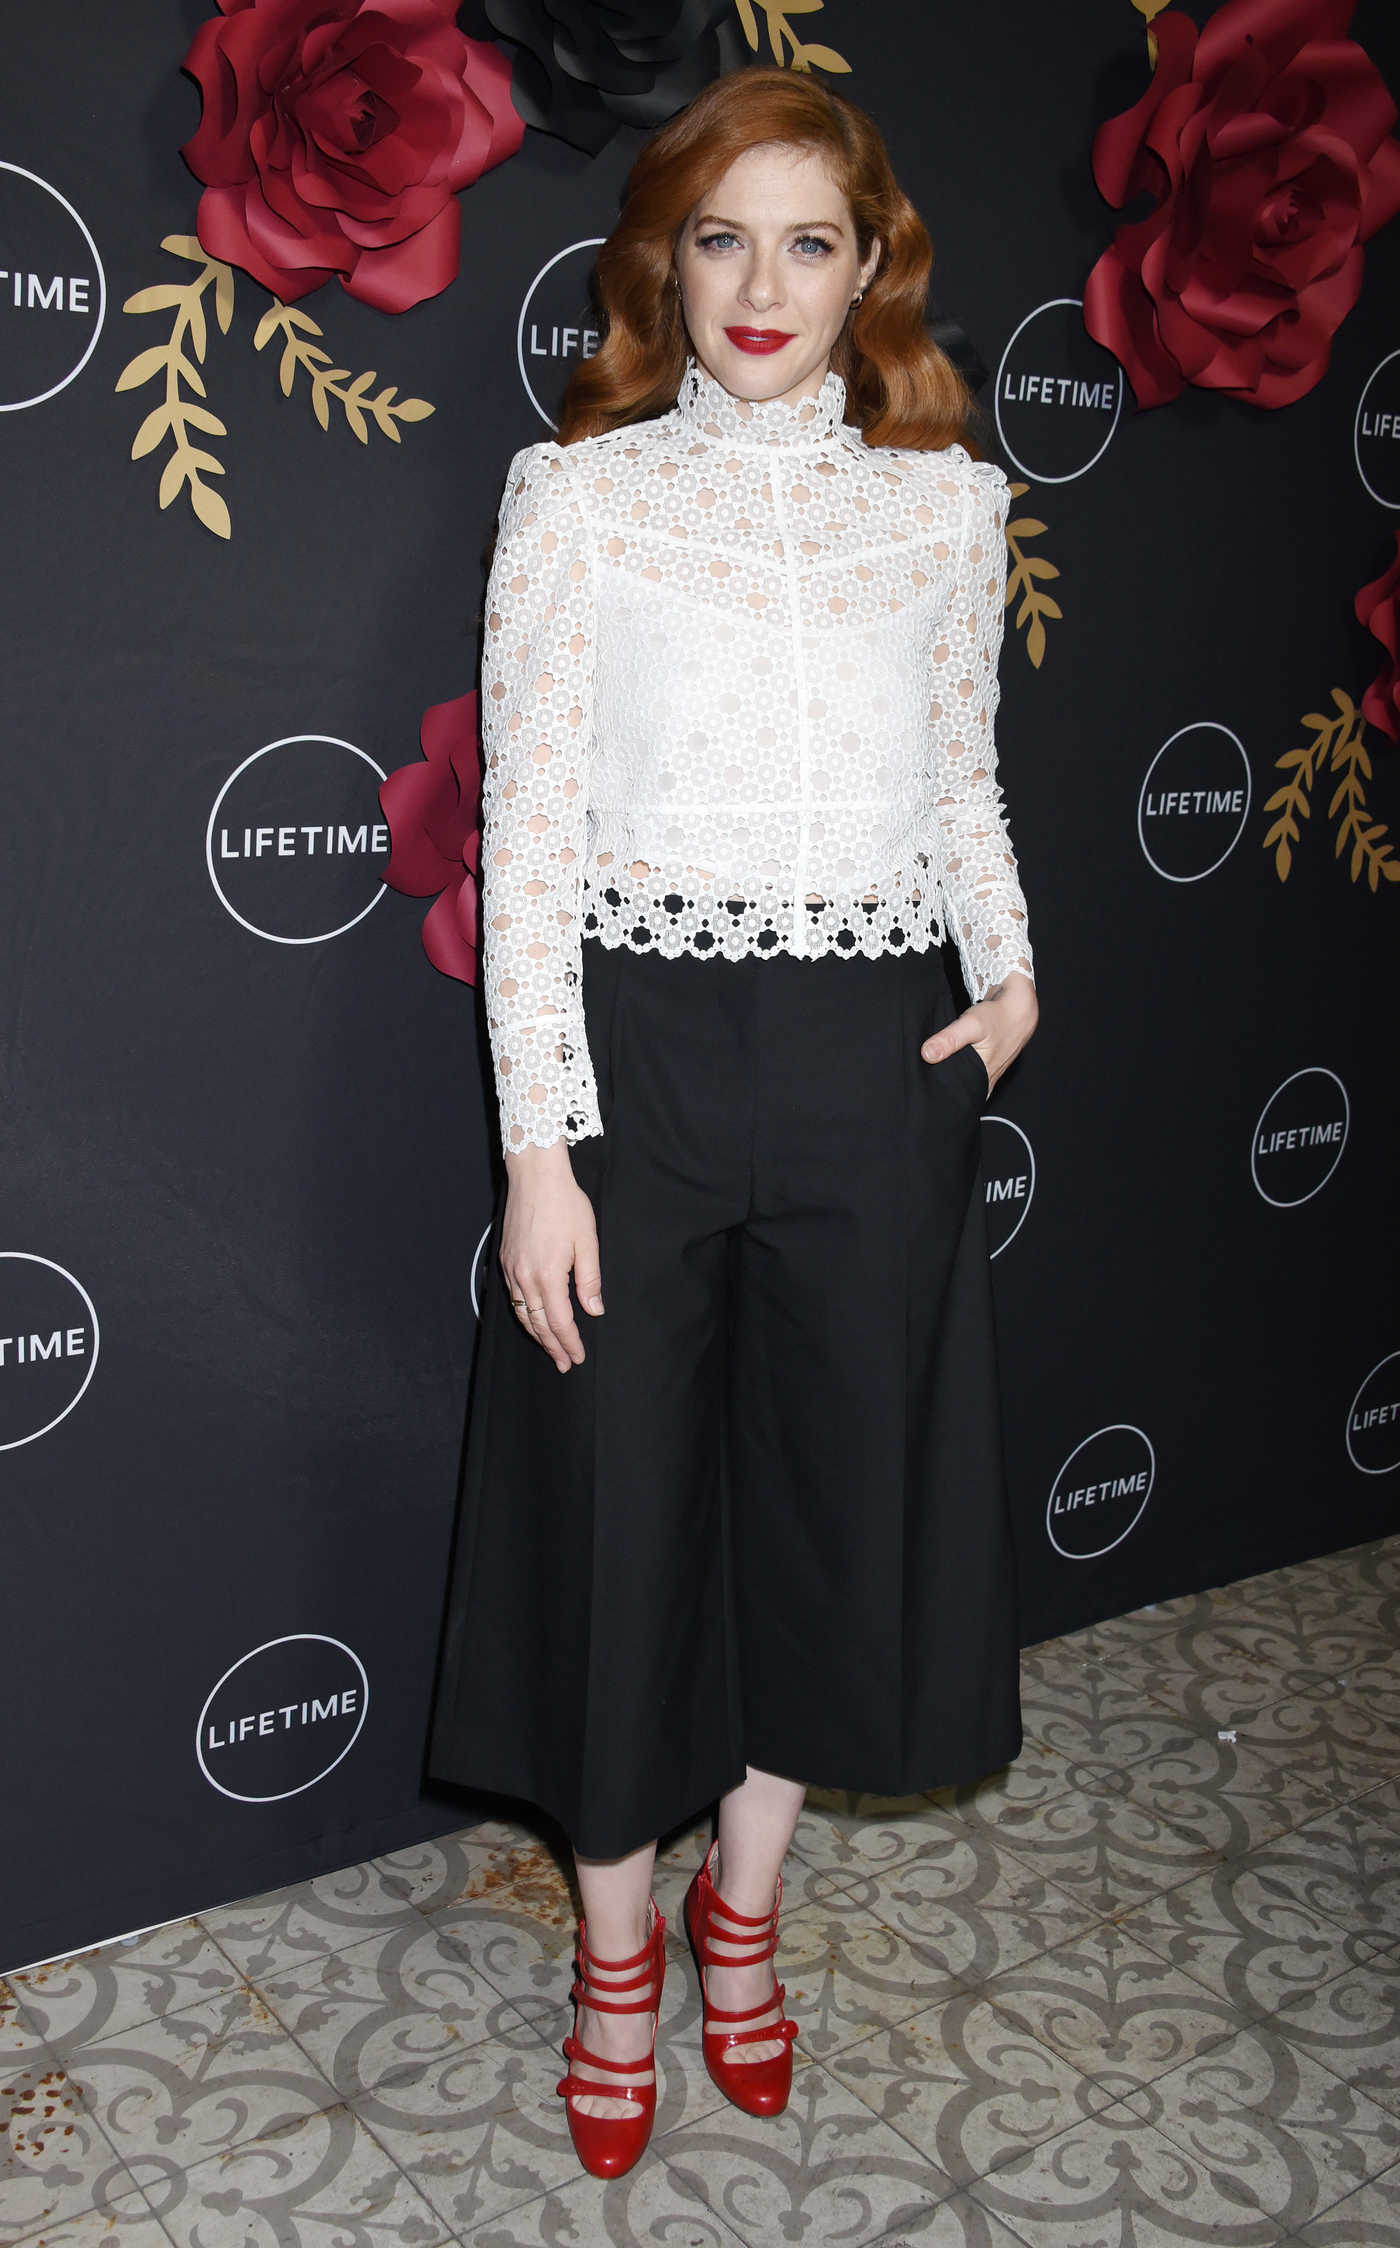 Rachelle LeFevre at Unreal and Mary Kills People Lifetime Party in Los Angeles 02/13/2018